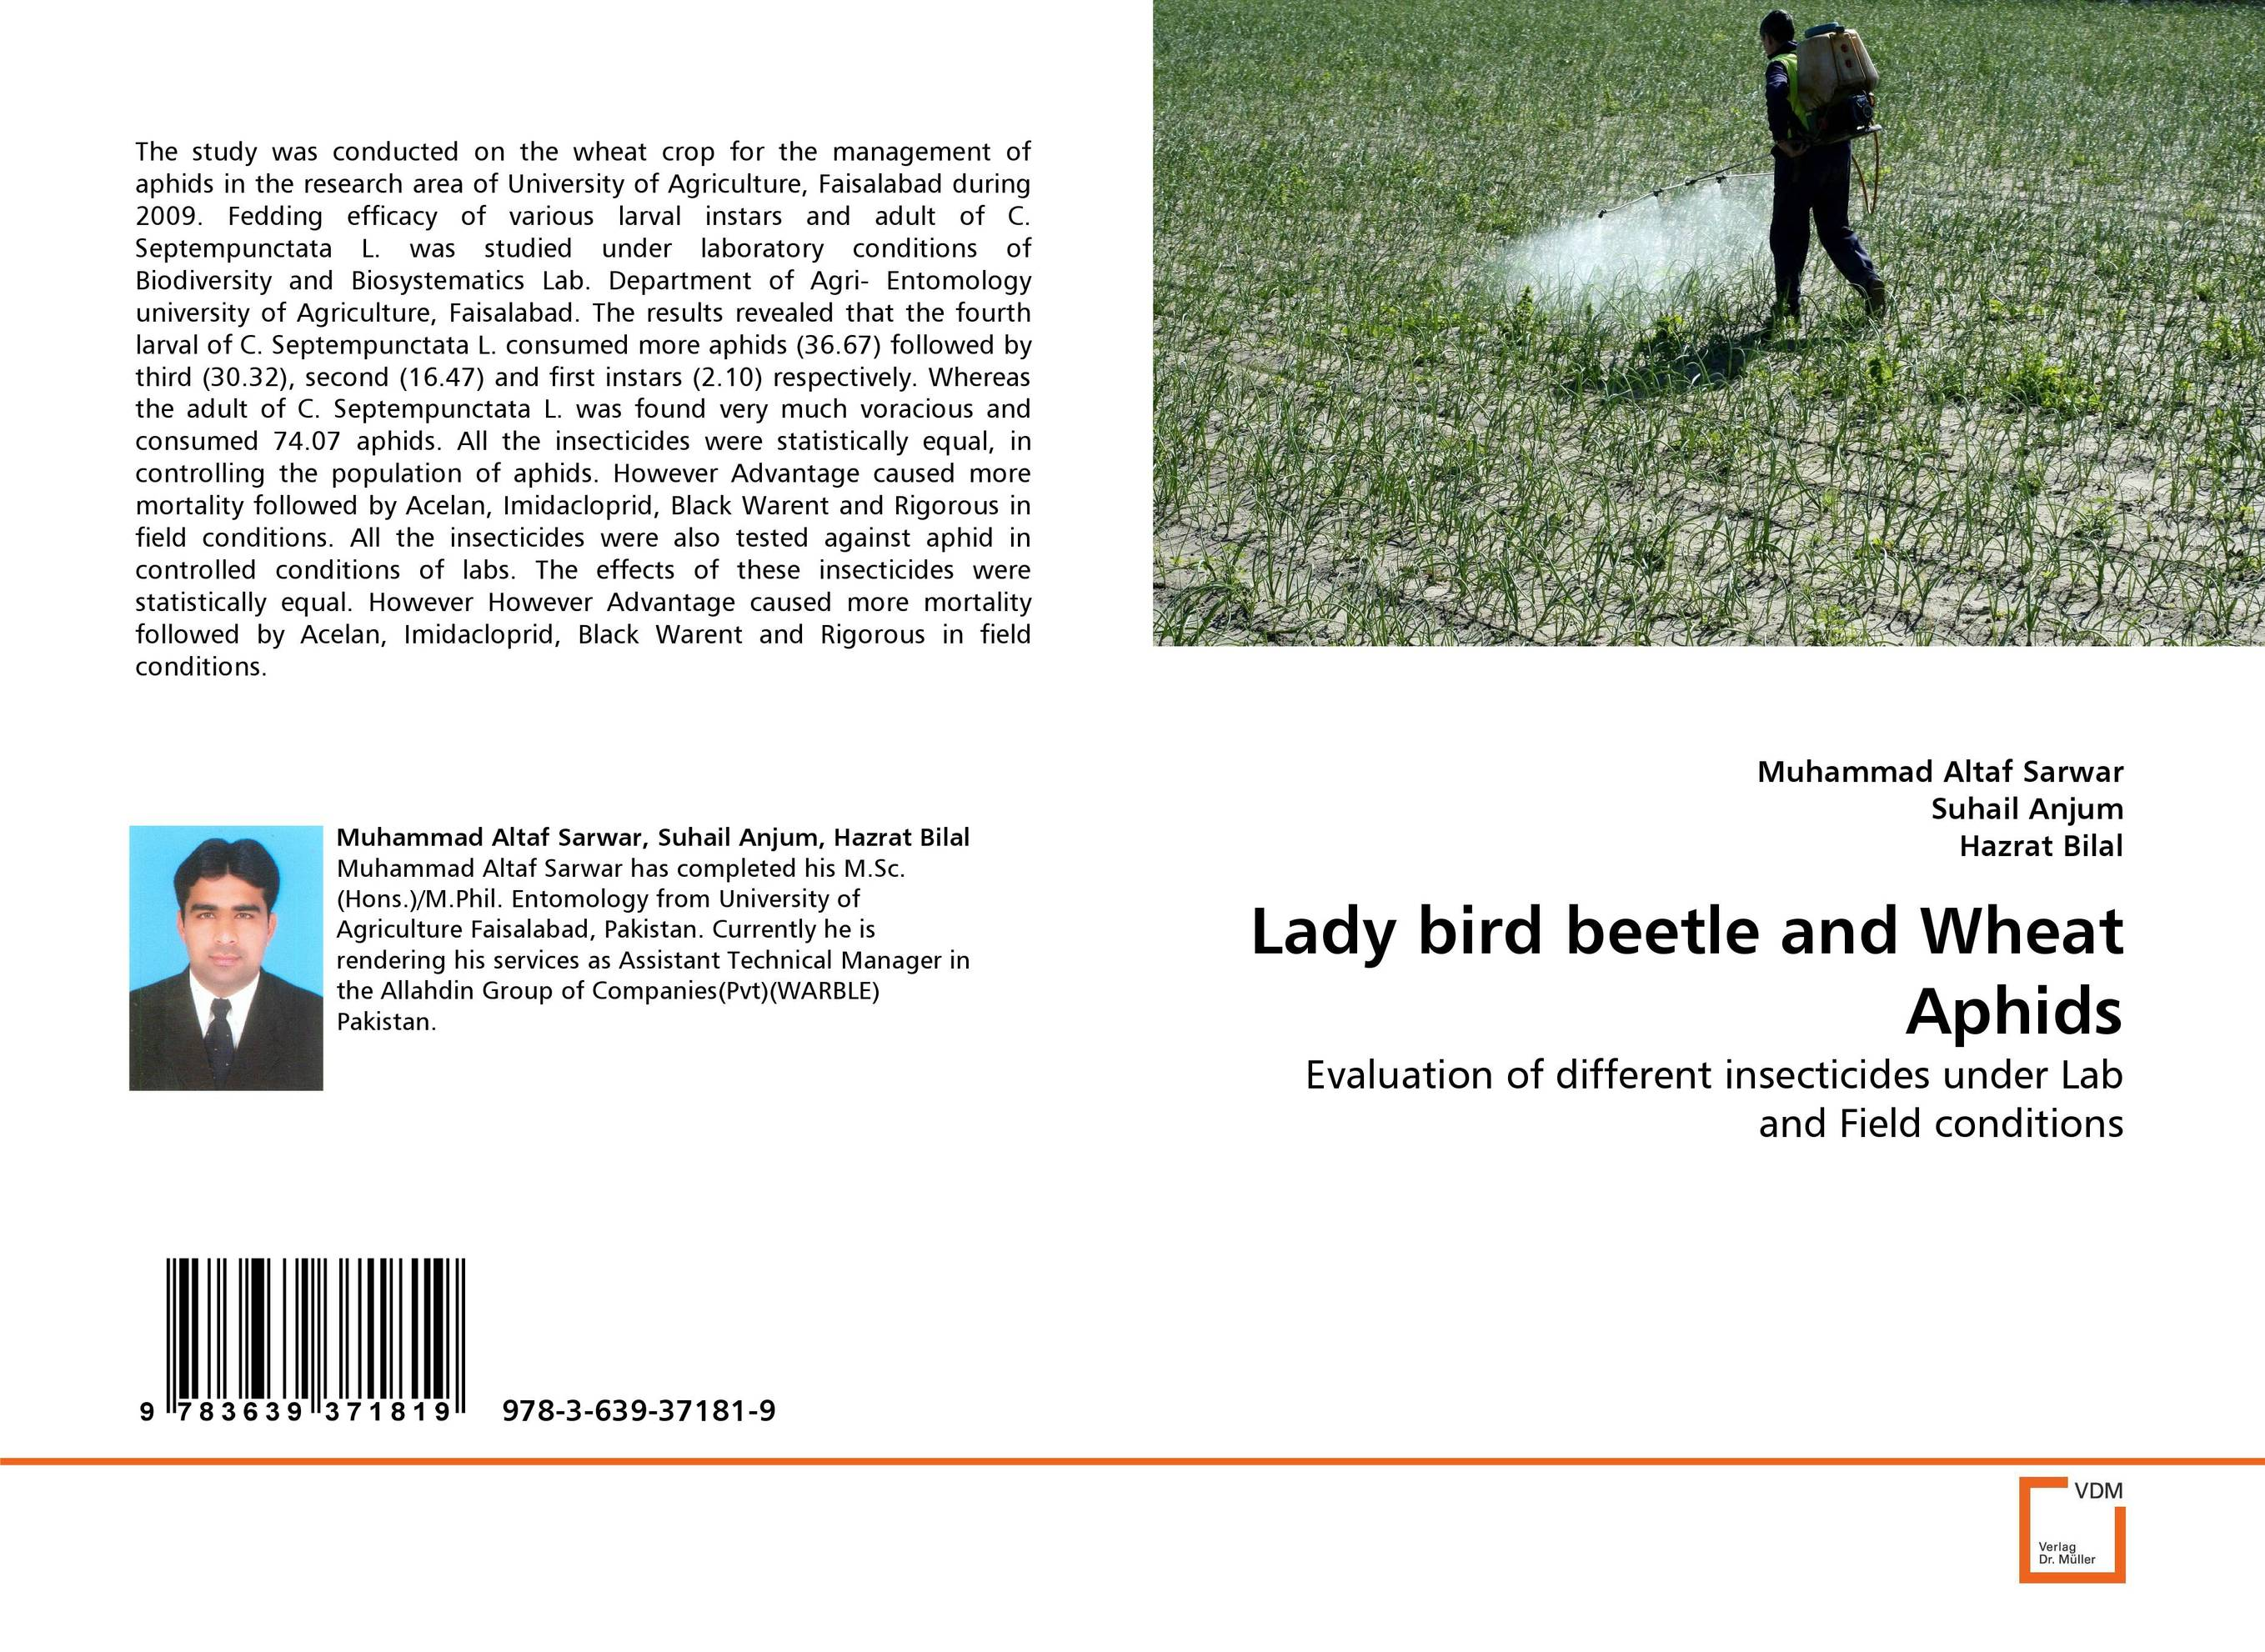 Lady bird beetle and Wheat Aphids evaluation of lucern as a predator source for wheat aphids